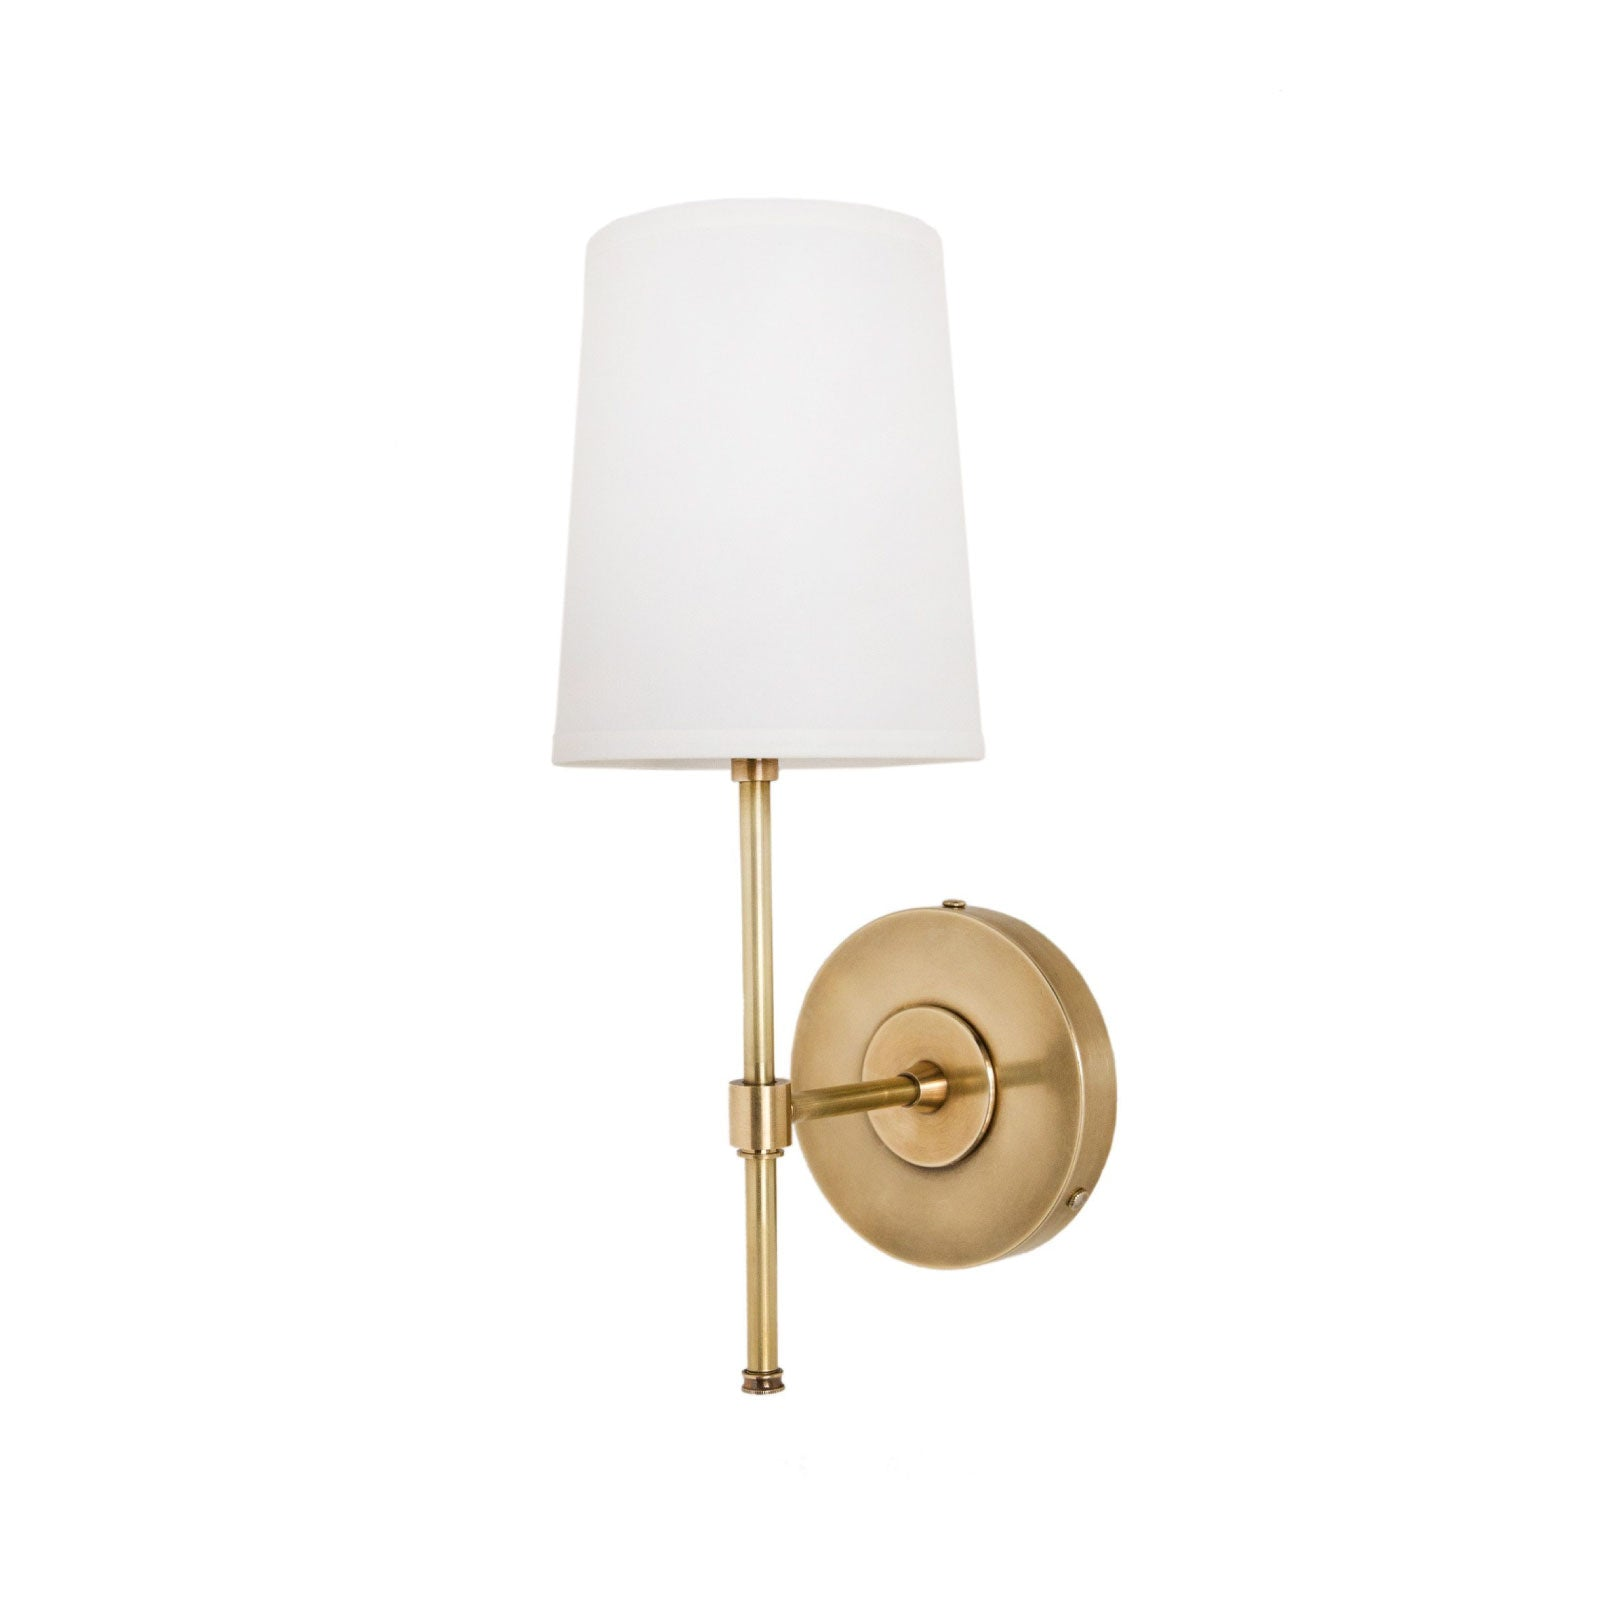 Billiard Sconce in Brass